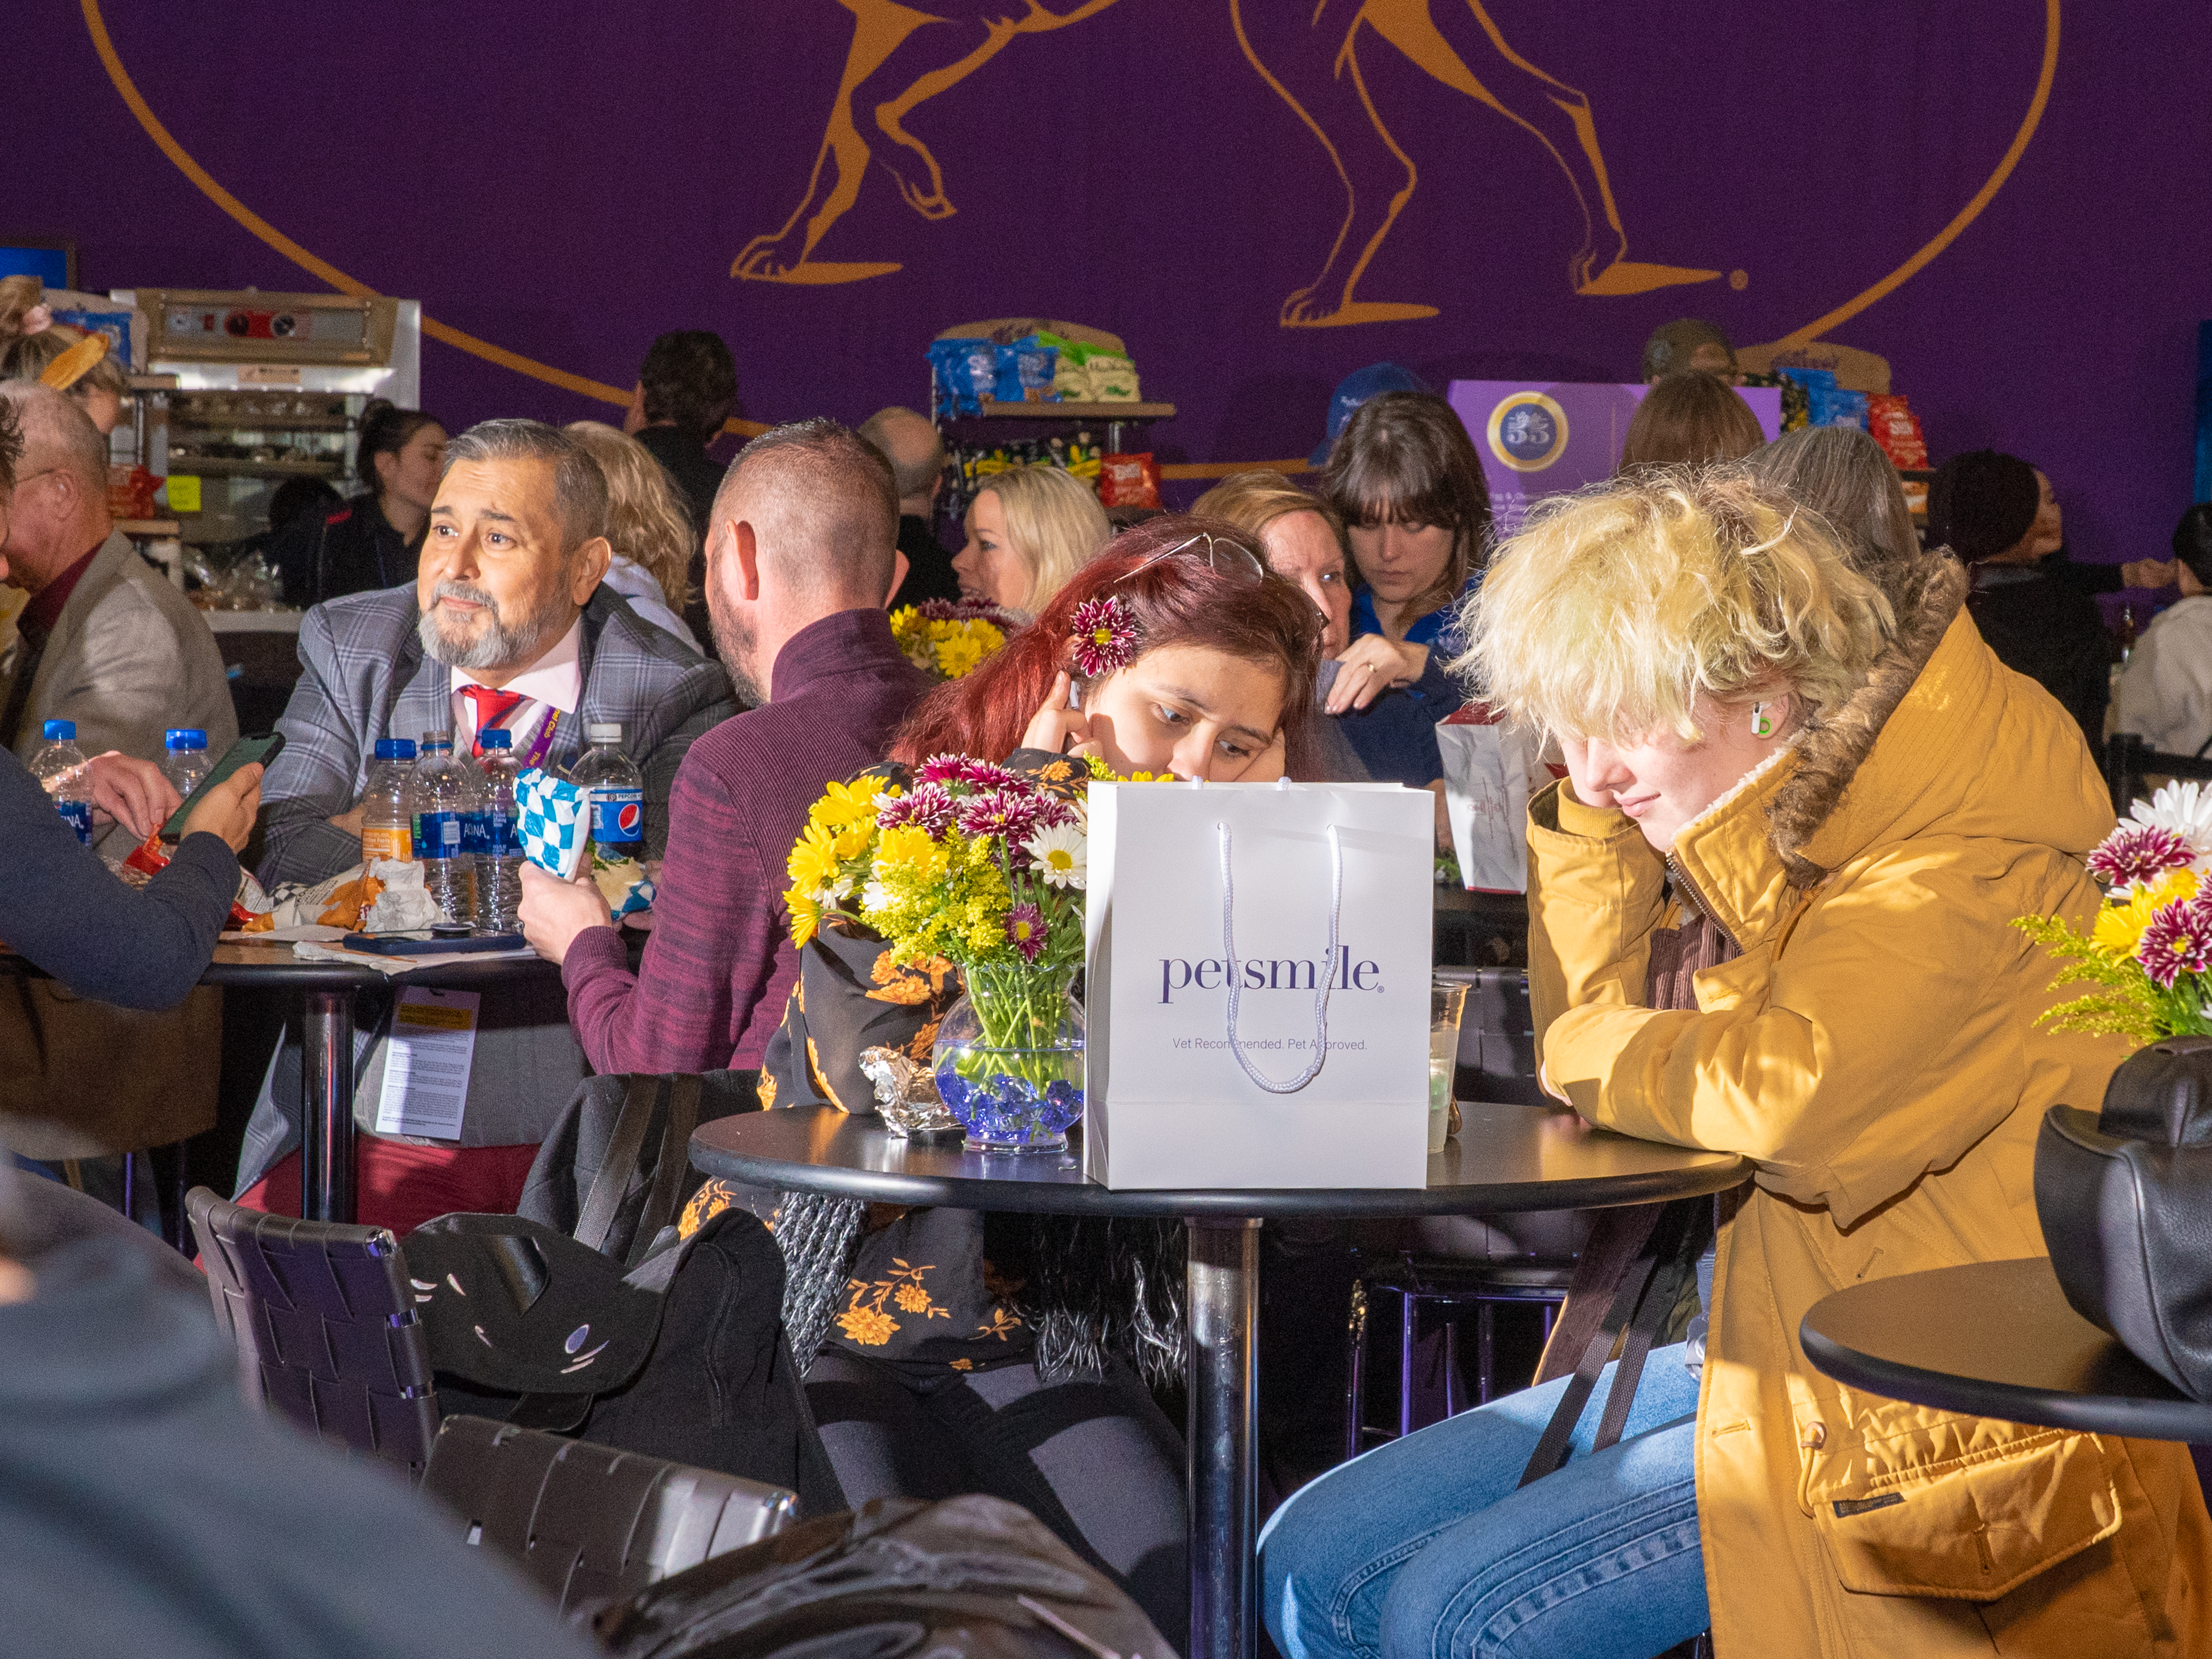 People hang out in the dining area at Pier 94 during the Westminster Dog Show